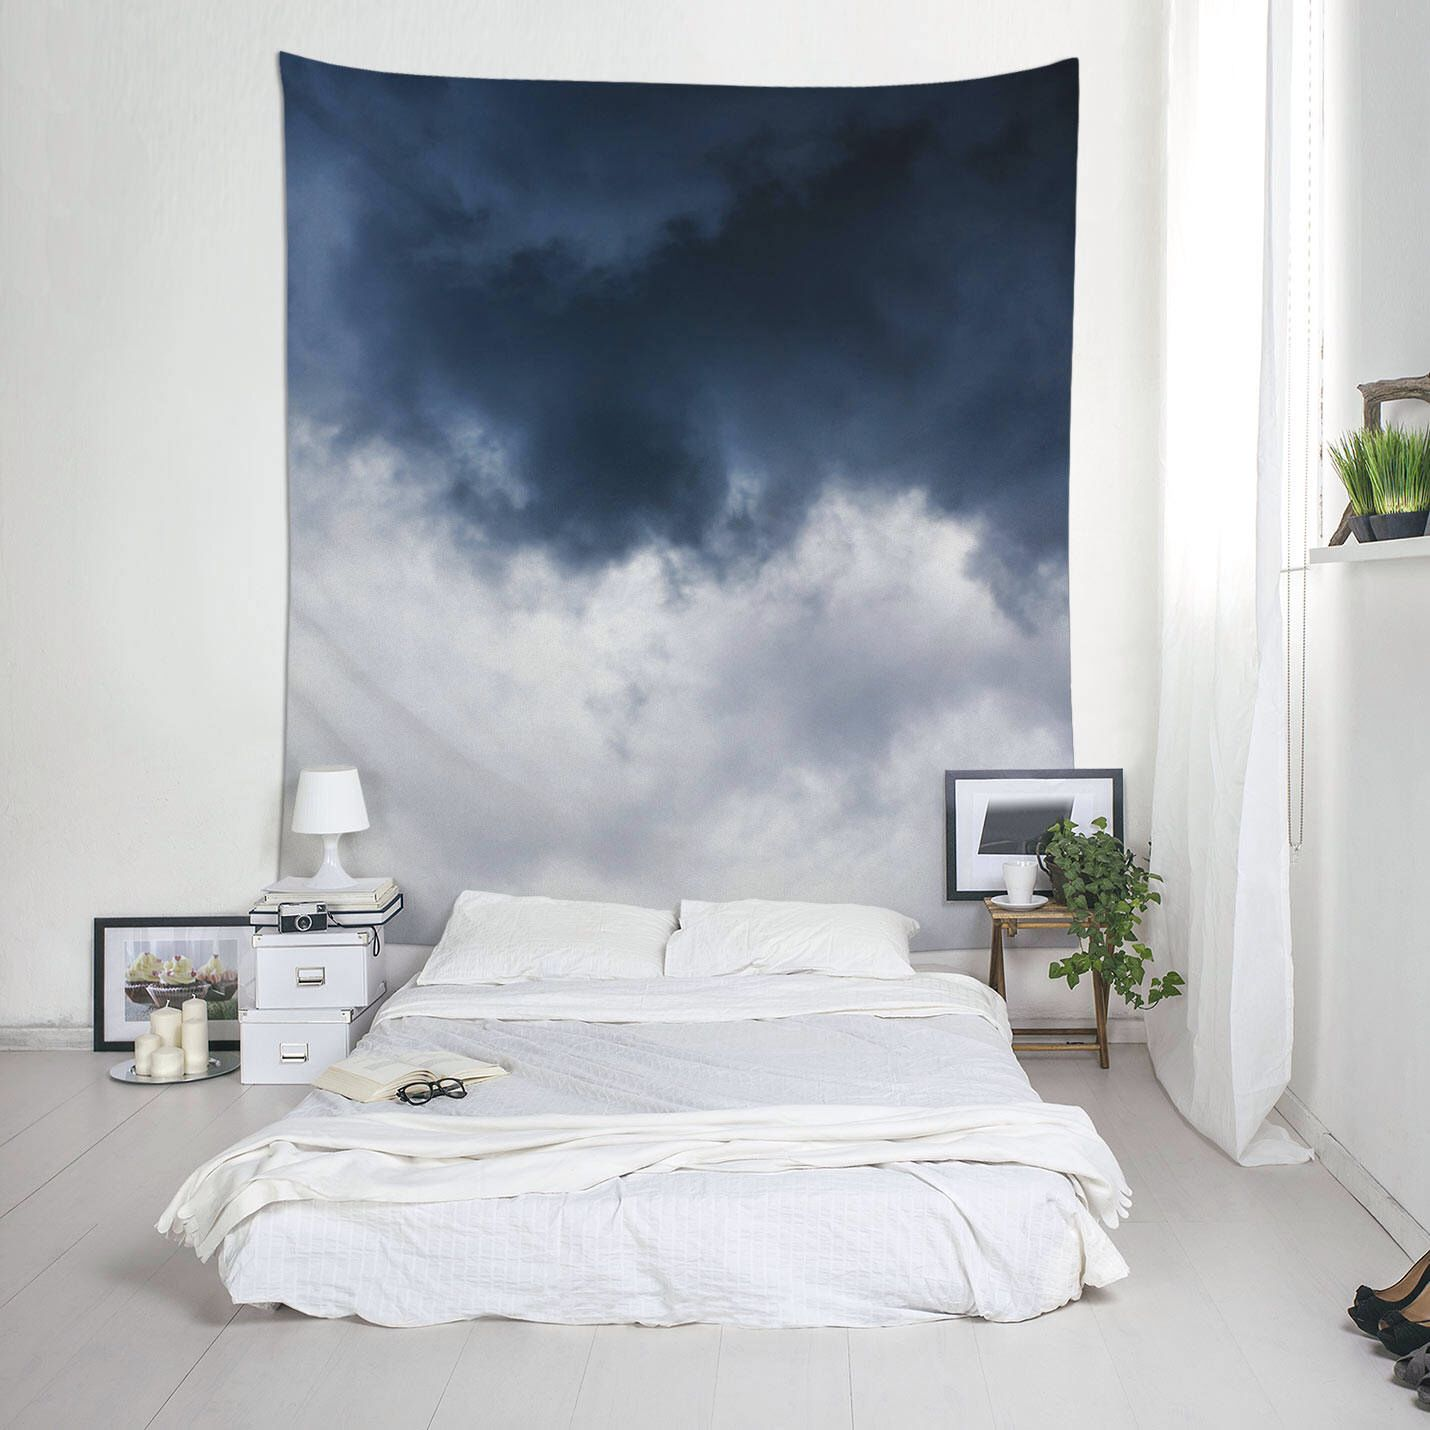 Cool Tapestries Cloud Tapestry Large Wall Hangings For Room Decor Or Photo Backdrop Ul112 Cool Room Designs Cool Tapestries Photo Wall Art